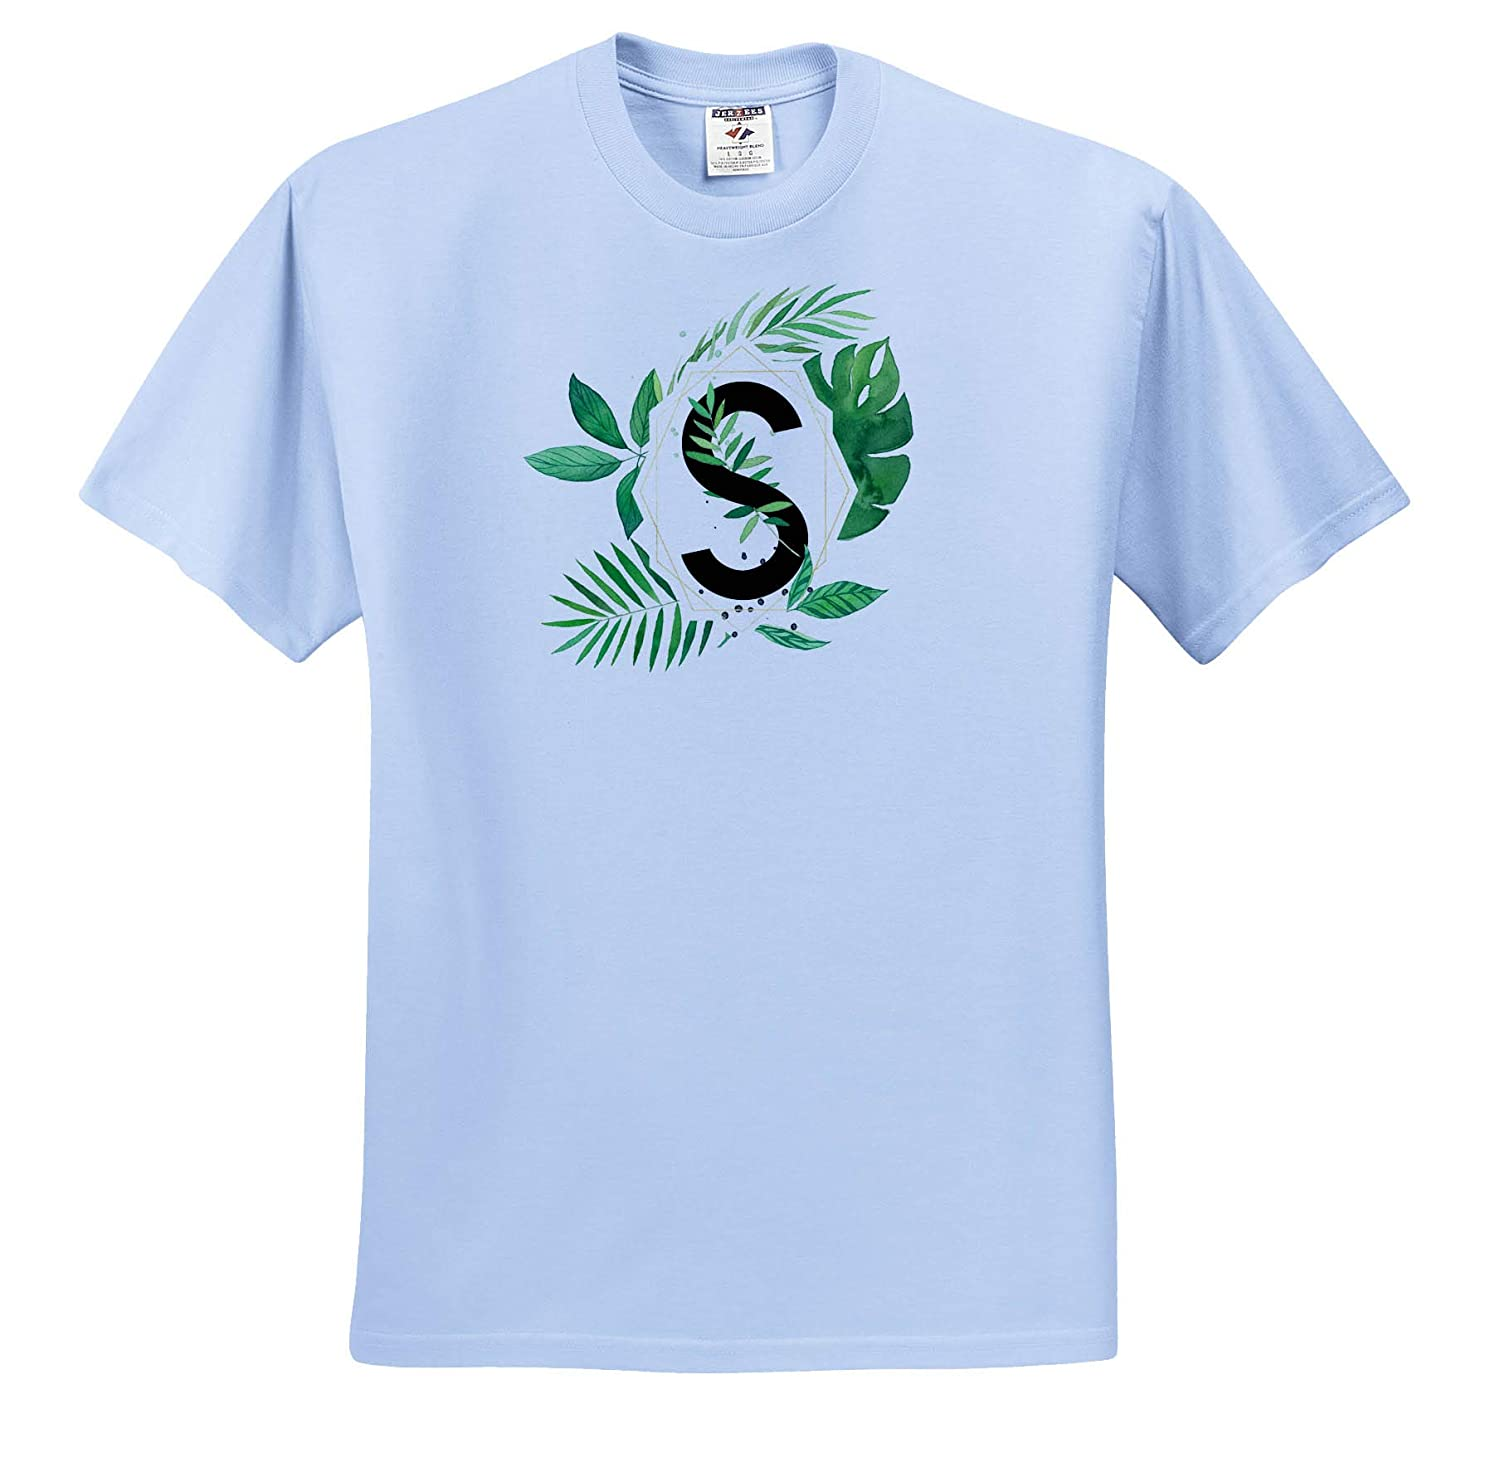 3dRose Anne Marie Baugh Monograms ts/_318113 Chic Image of Watercolor Tropical Leaves Monogram S Adult T-Shirt XL